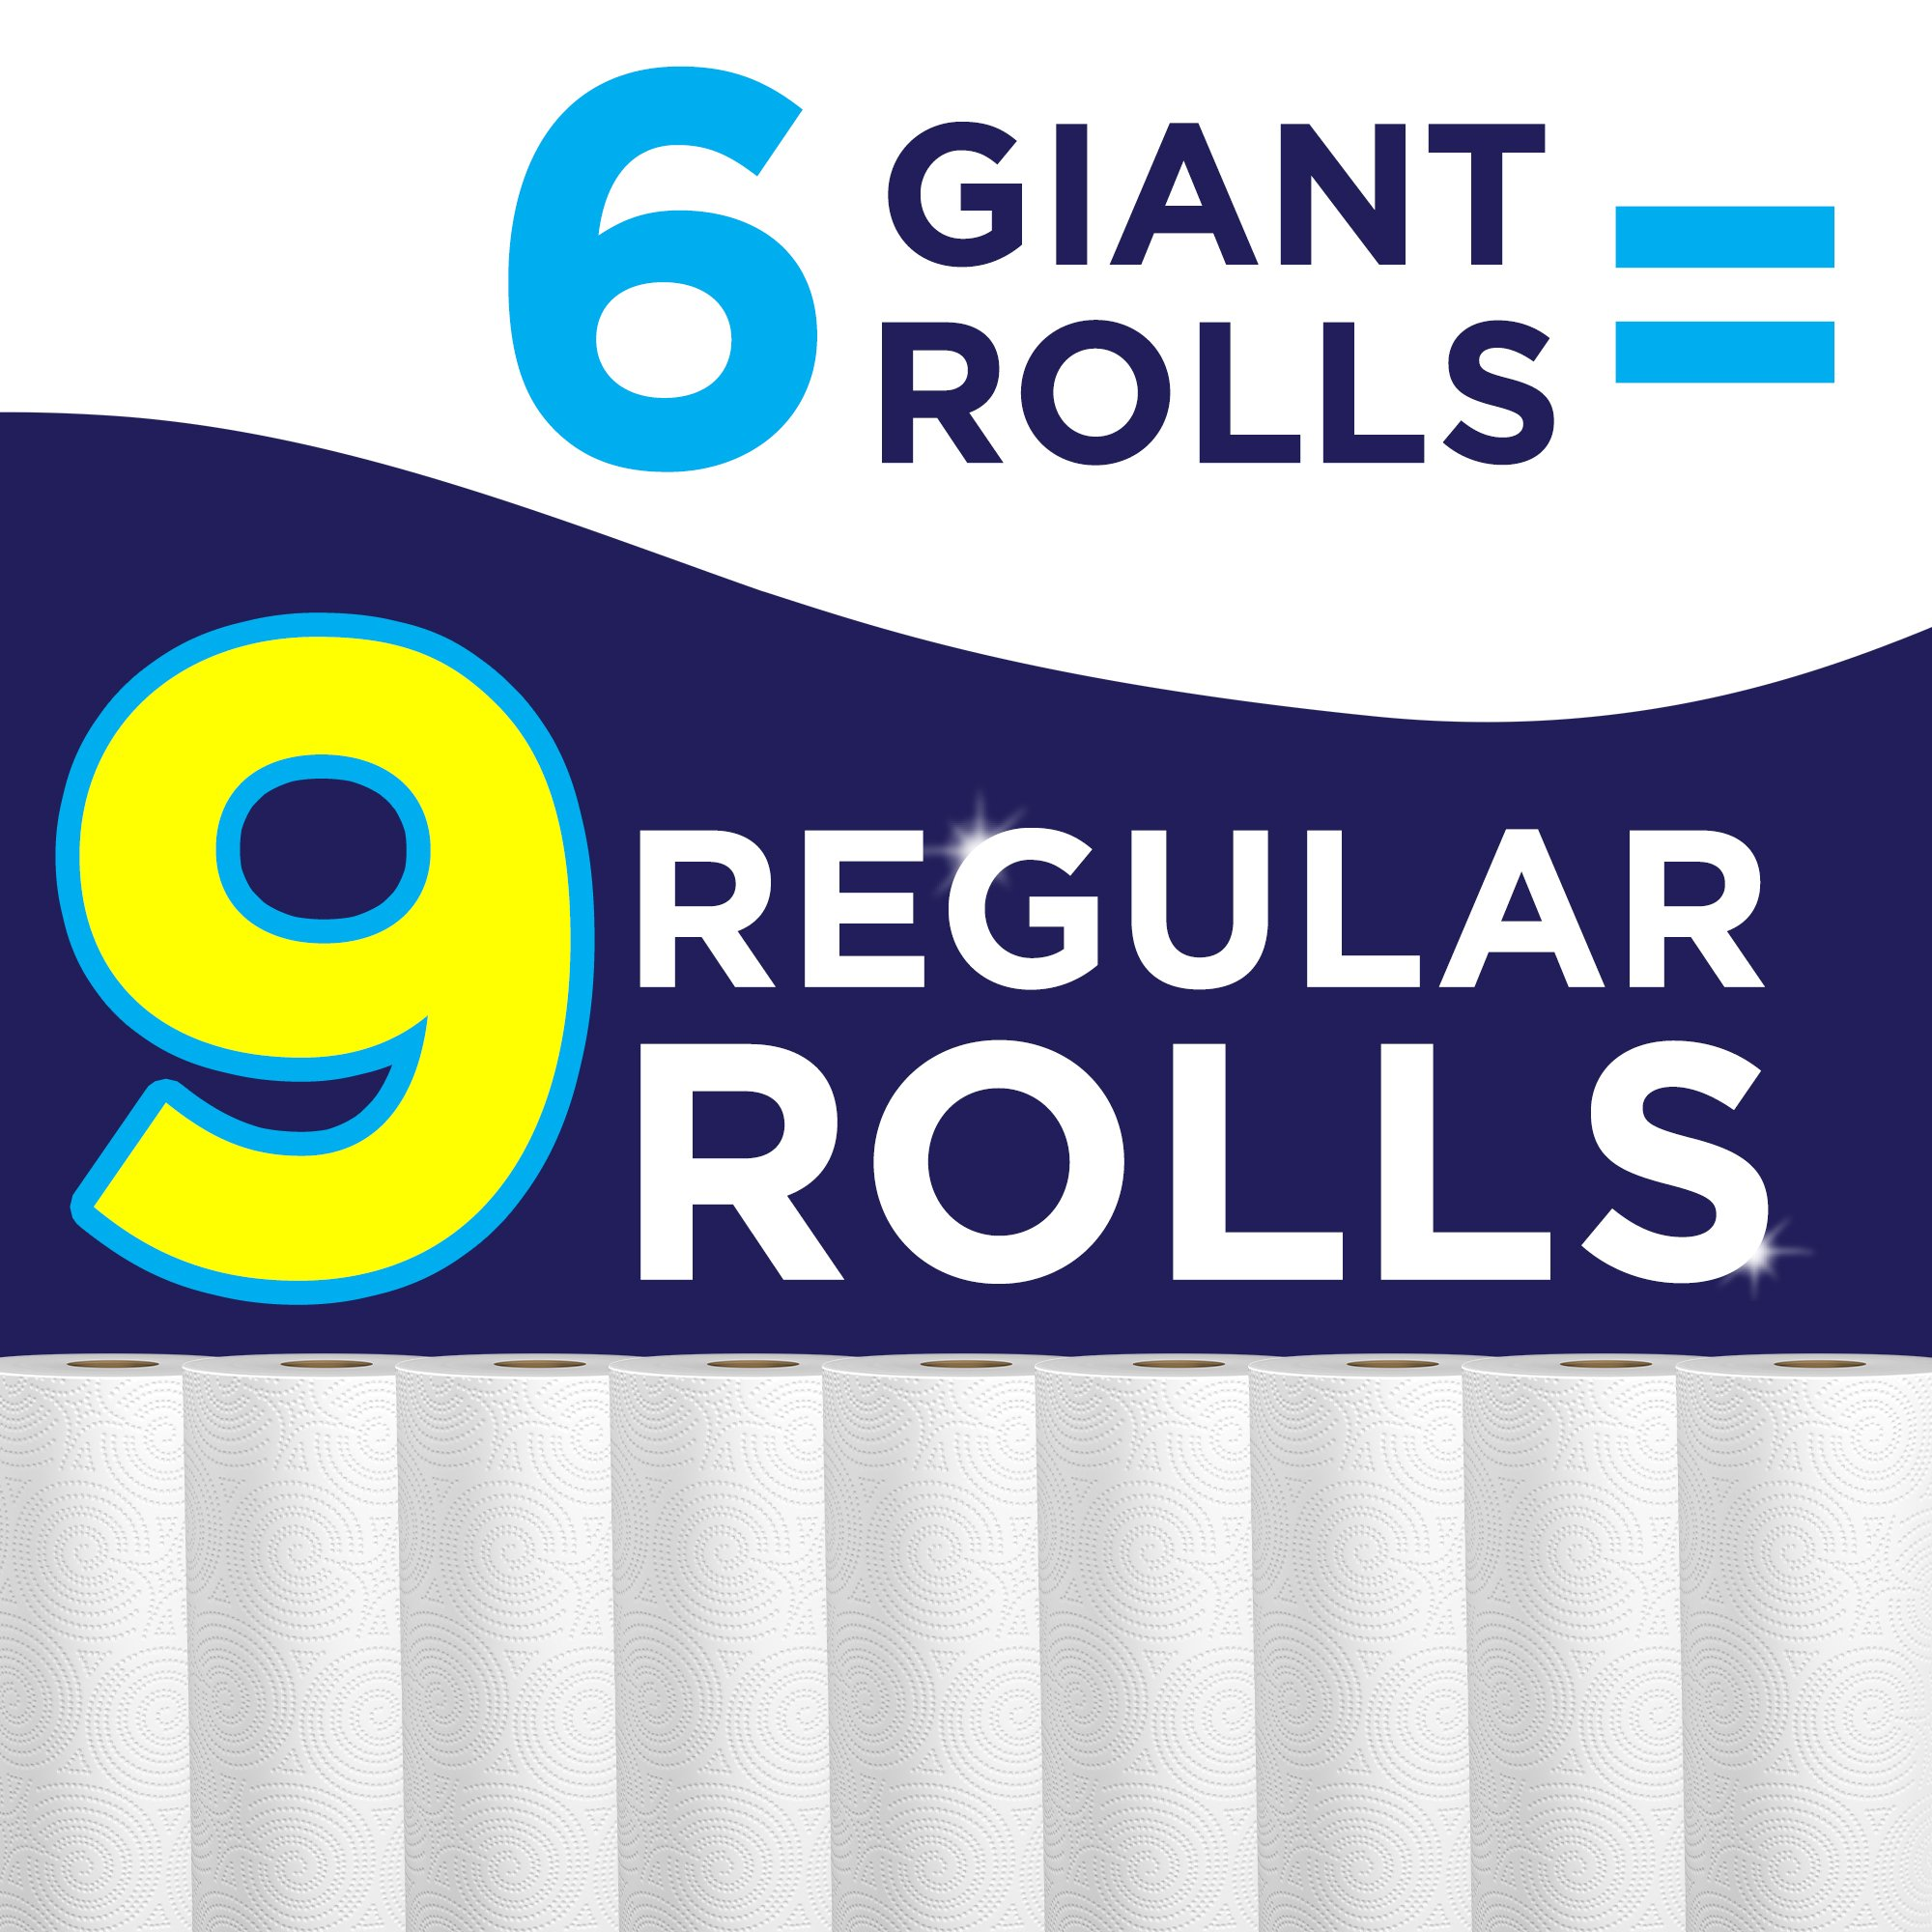 Sparkle Paper Towels, 6 Giant Rolls, Modern White, Pick-A-Size, 6 = 9 Regular Rolls by Sparkle (Image #3)